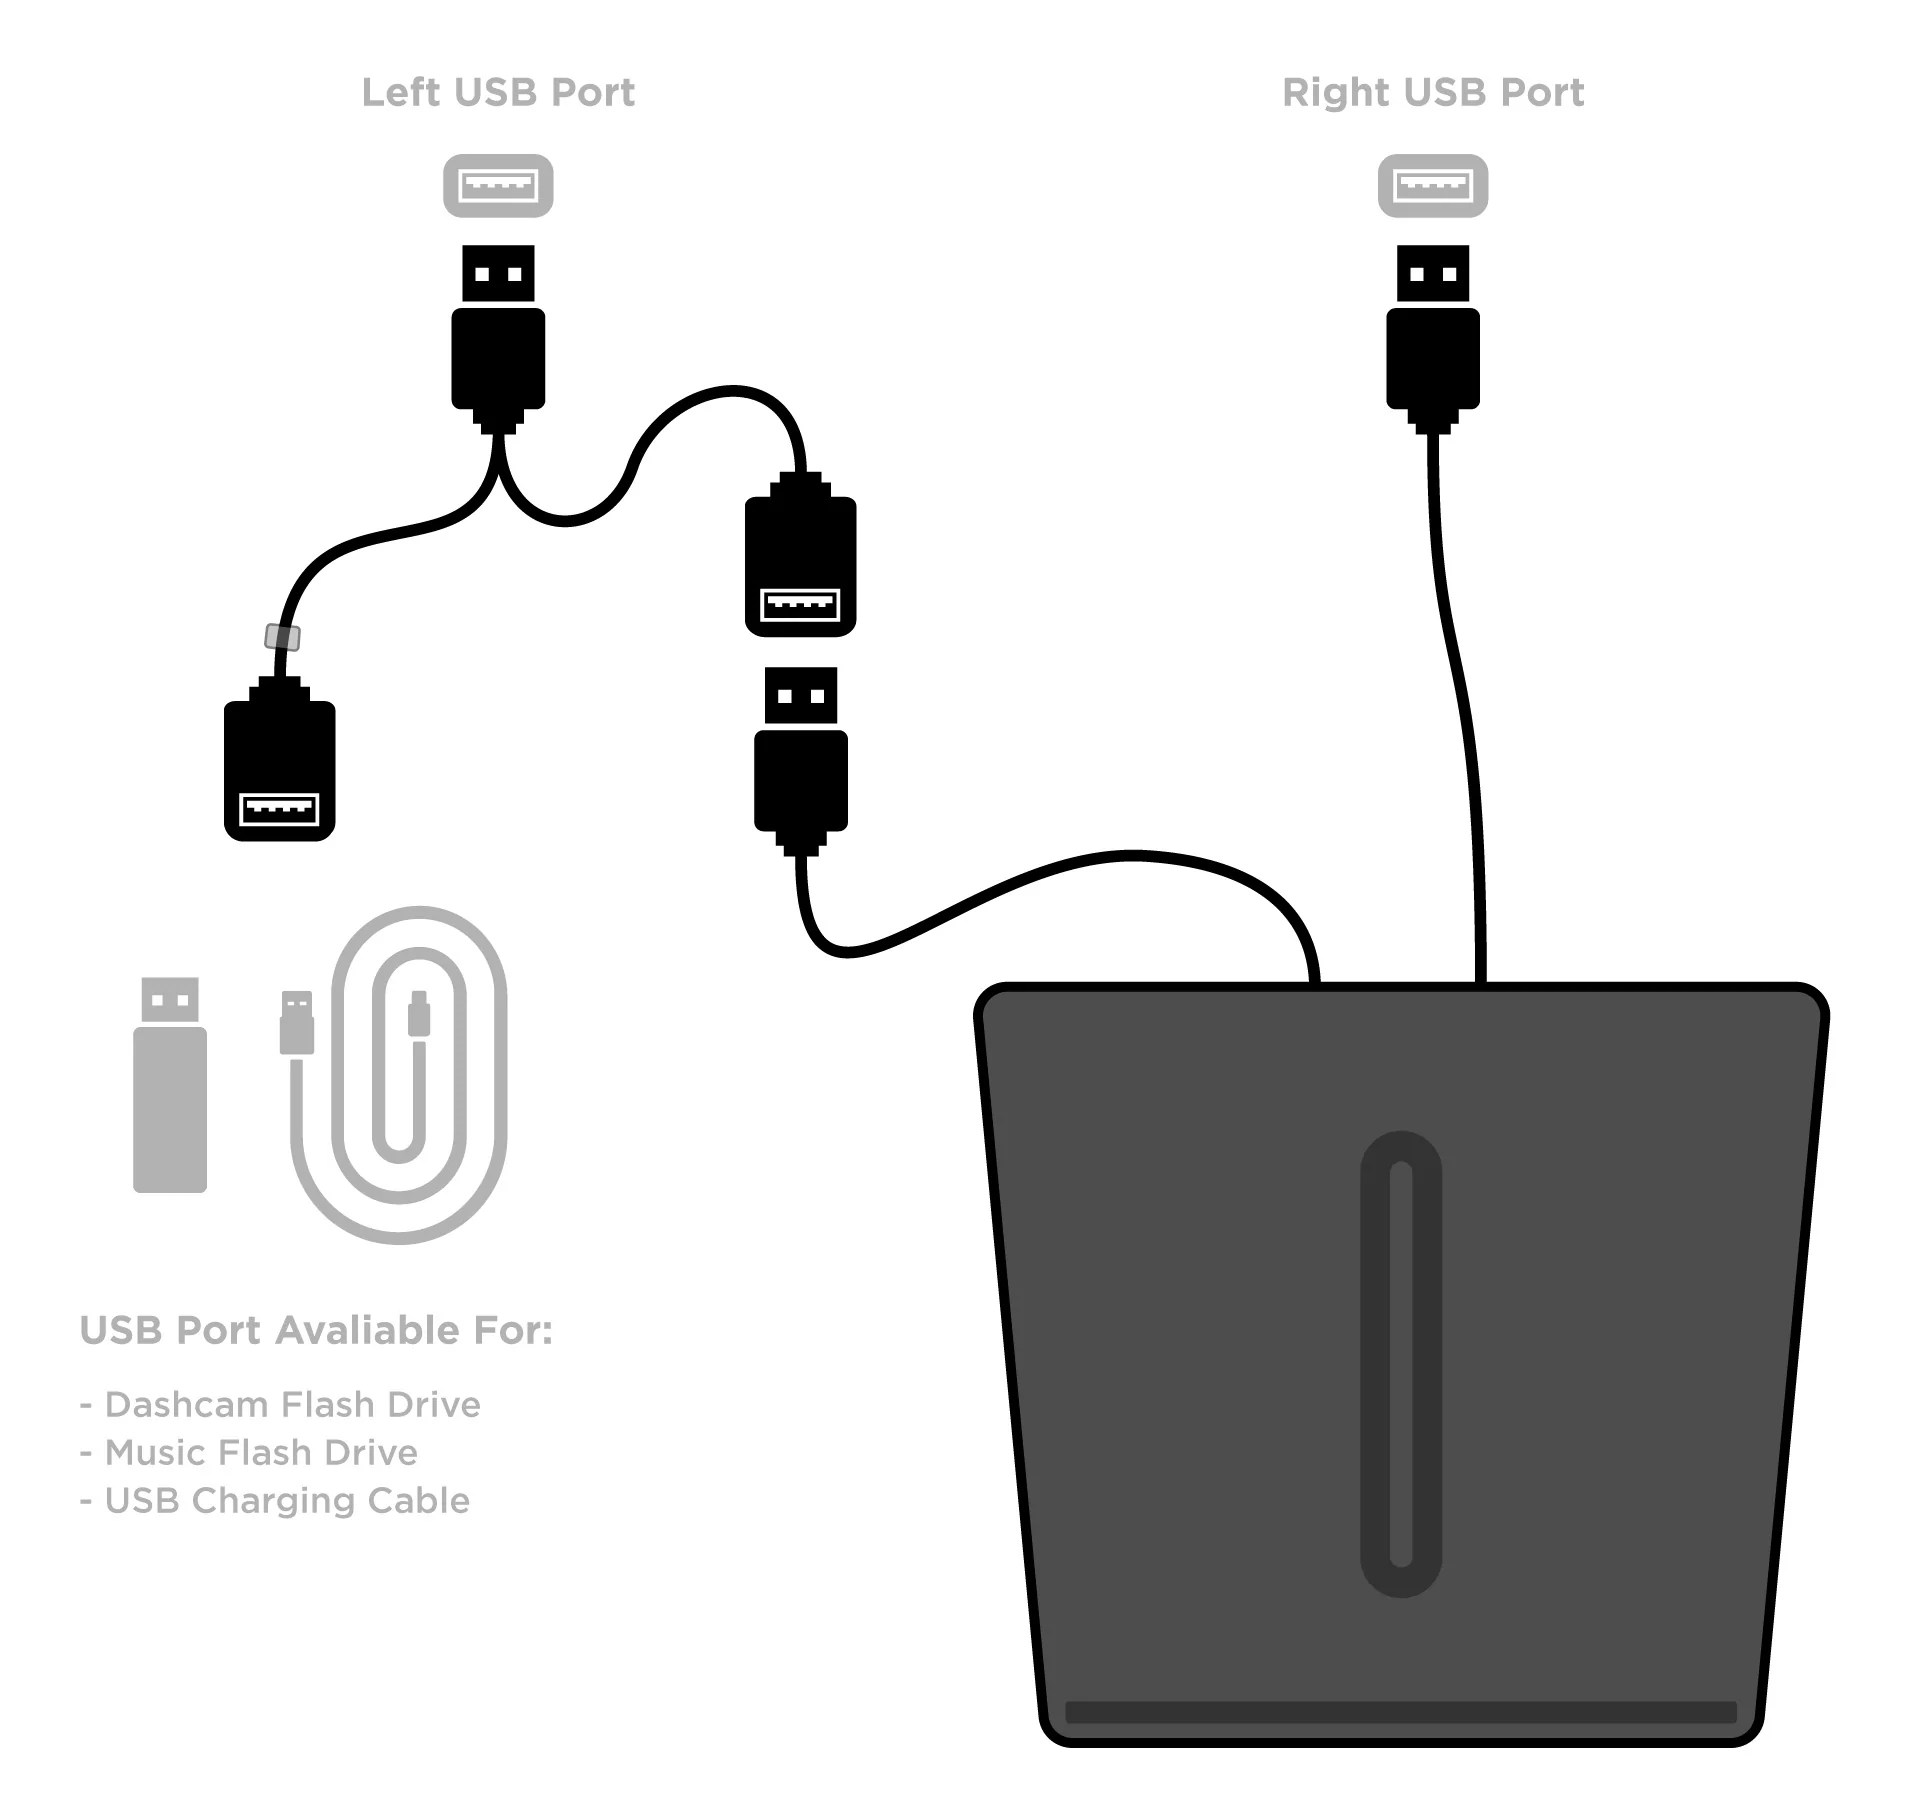 small resolution of the clear gray tag on the left cable of the usb splitter picture below also appears on the actual usb splitter and indicates the usb port that supports both